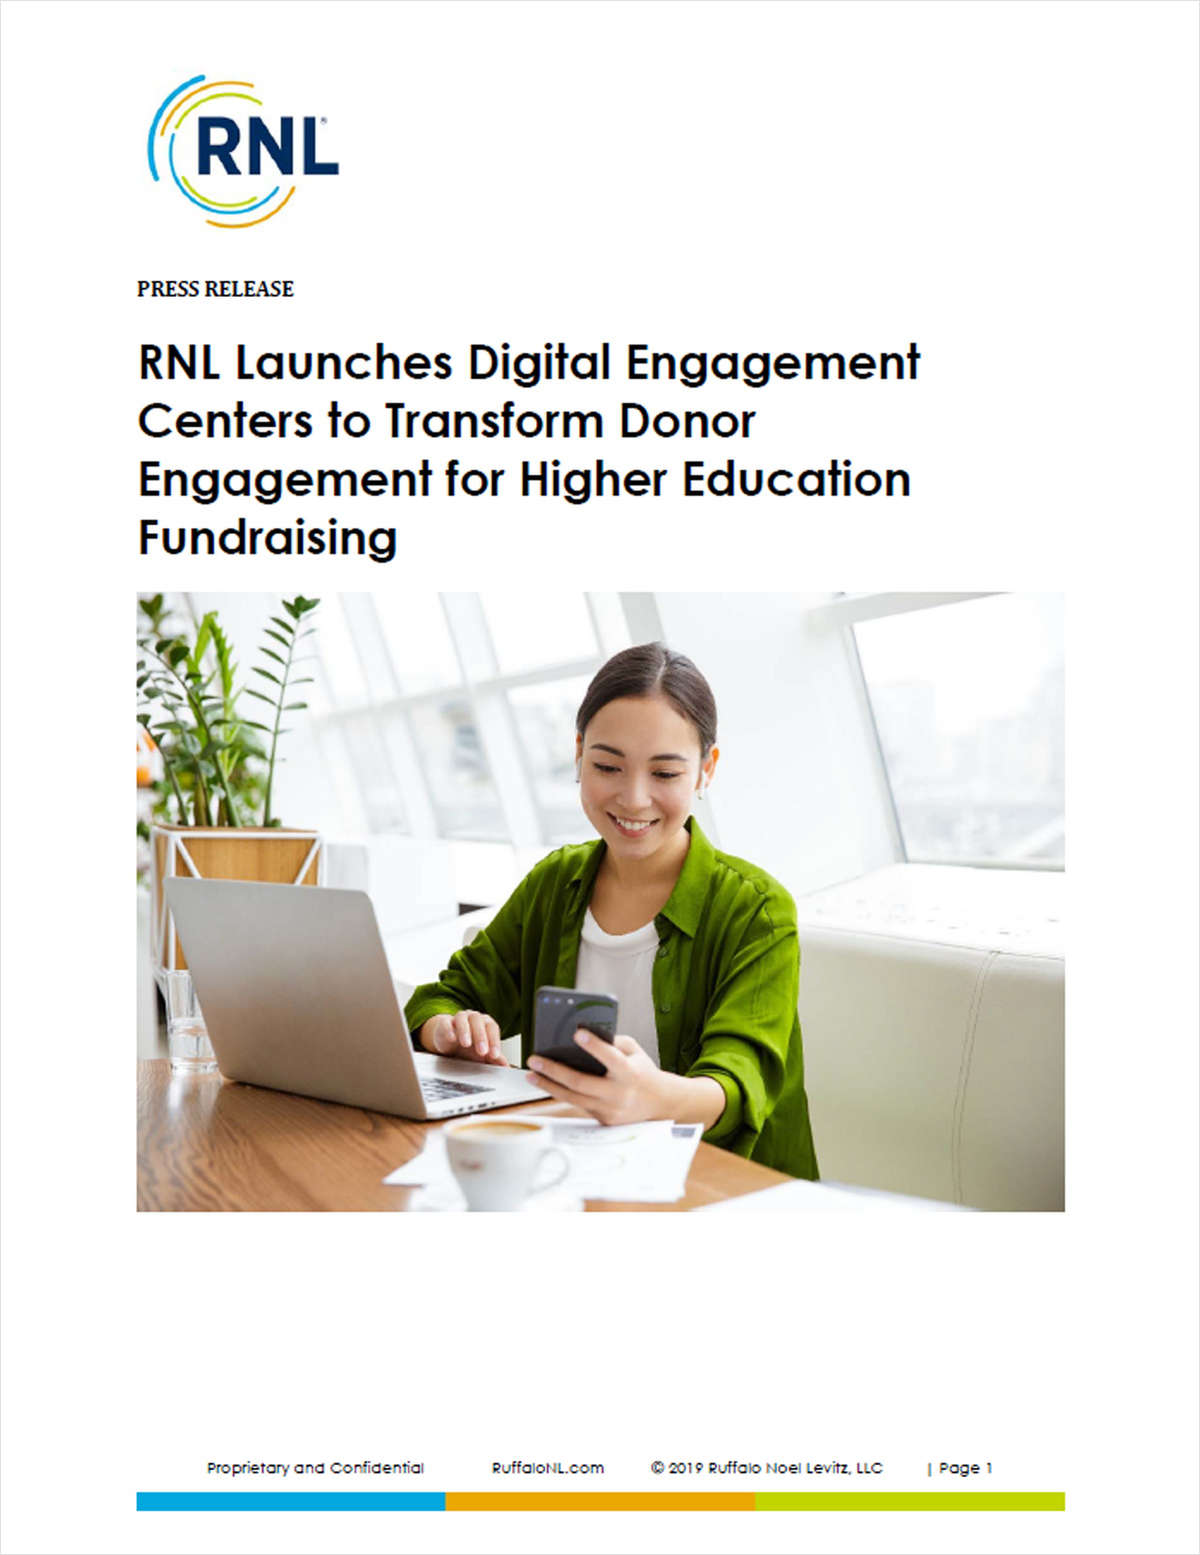 RNL Launches Digital Engagement Centers to Transform Donor Engagement for Higher Education Fundraising